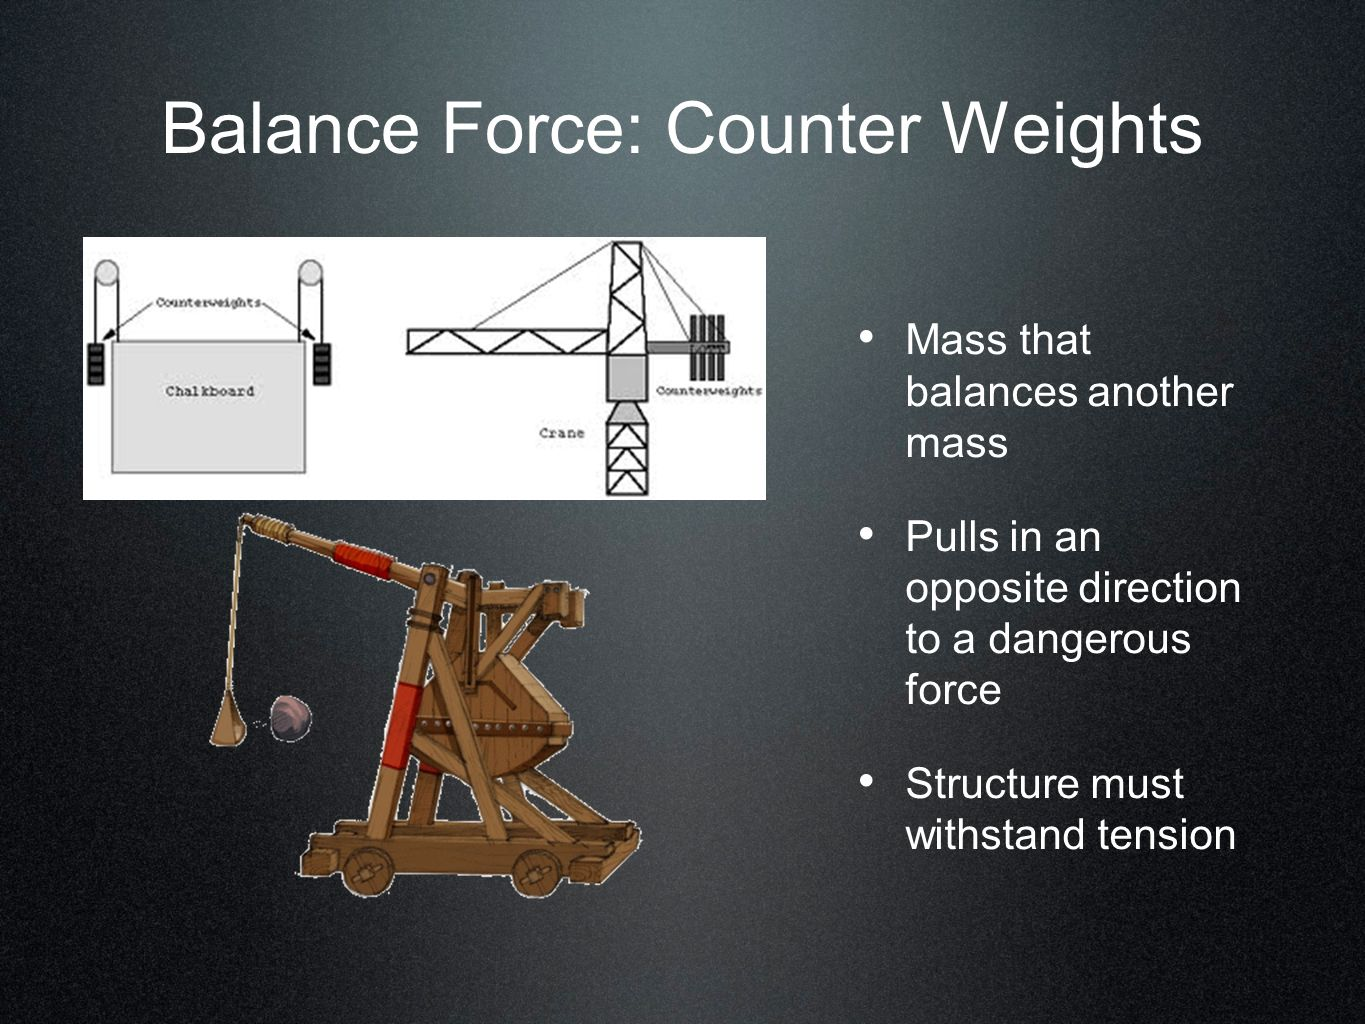 Balance Force: Counter Weights